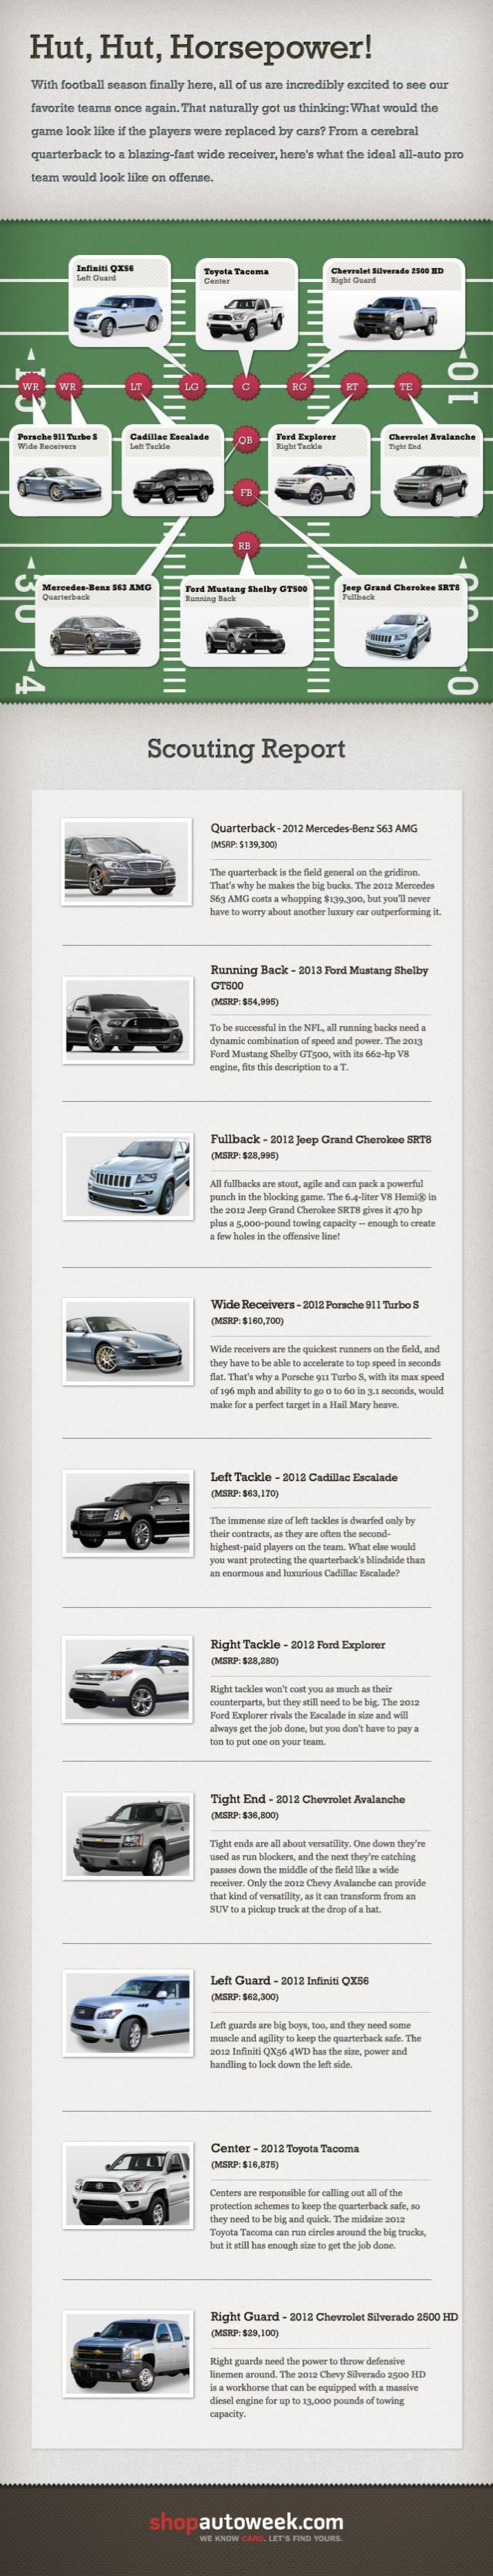 The Ultimate Automotive Fantasy Football Line-Up Infographic